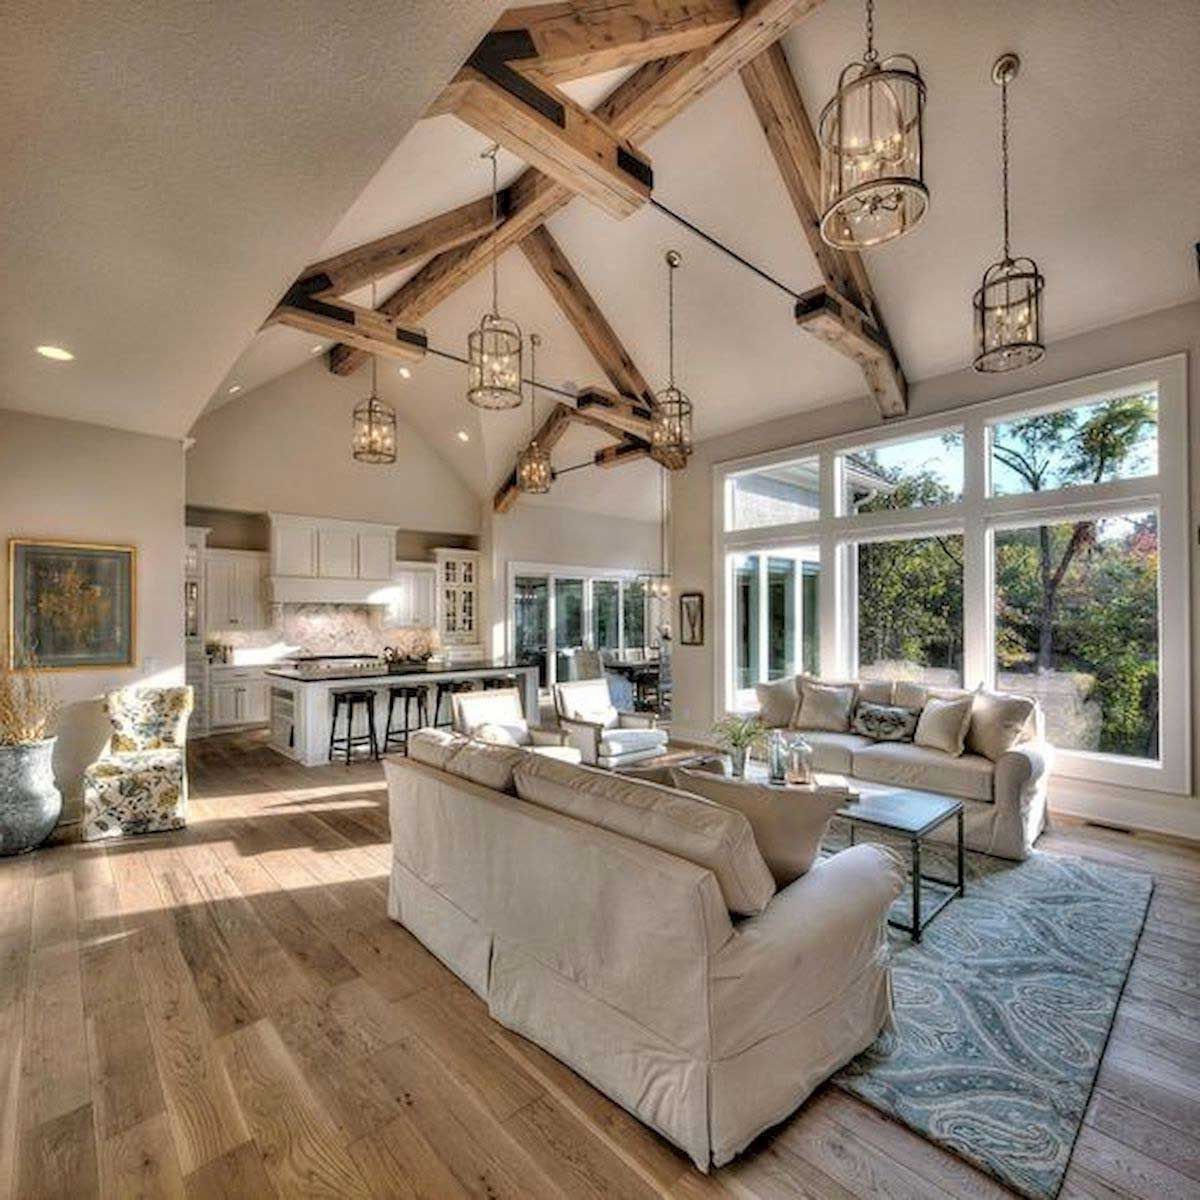 36 The Best Farmhouse Living Room Decor Ideas 23 1 For Your House Best Inspiration Ideas That You Want In 2020 Farm House Living Room Vaulted Ceiling Living Room Farmhouse Style Living Room Decor